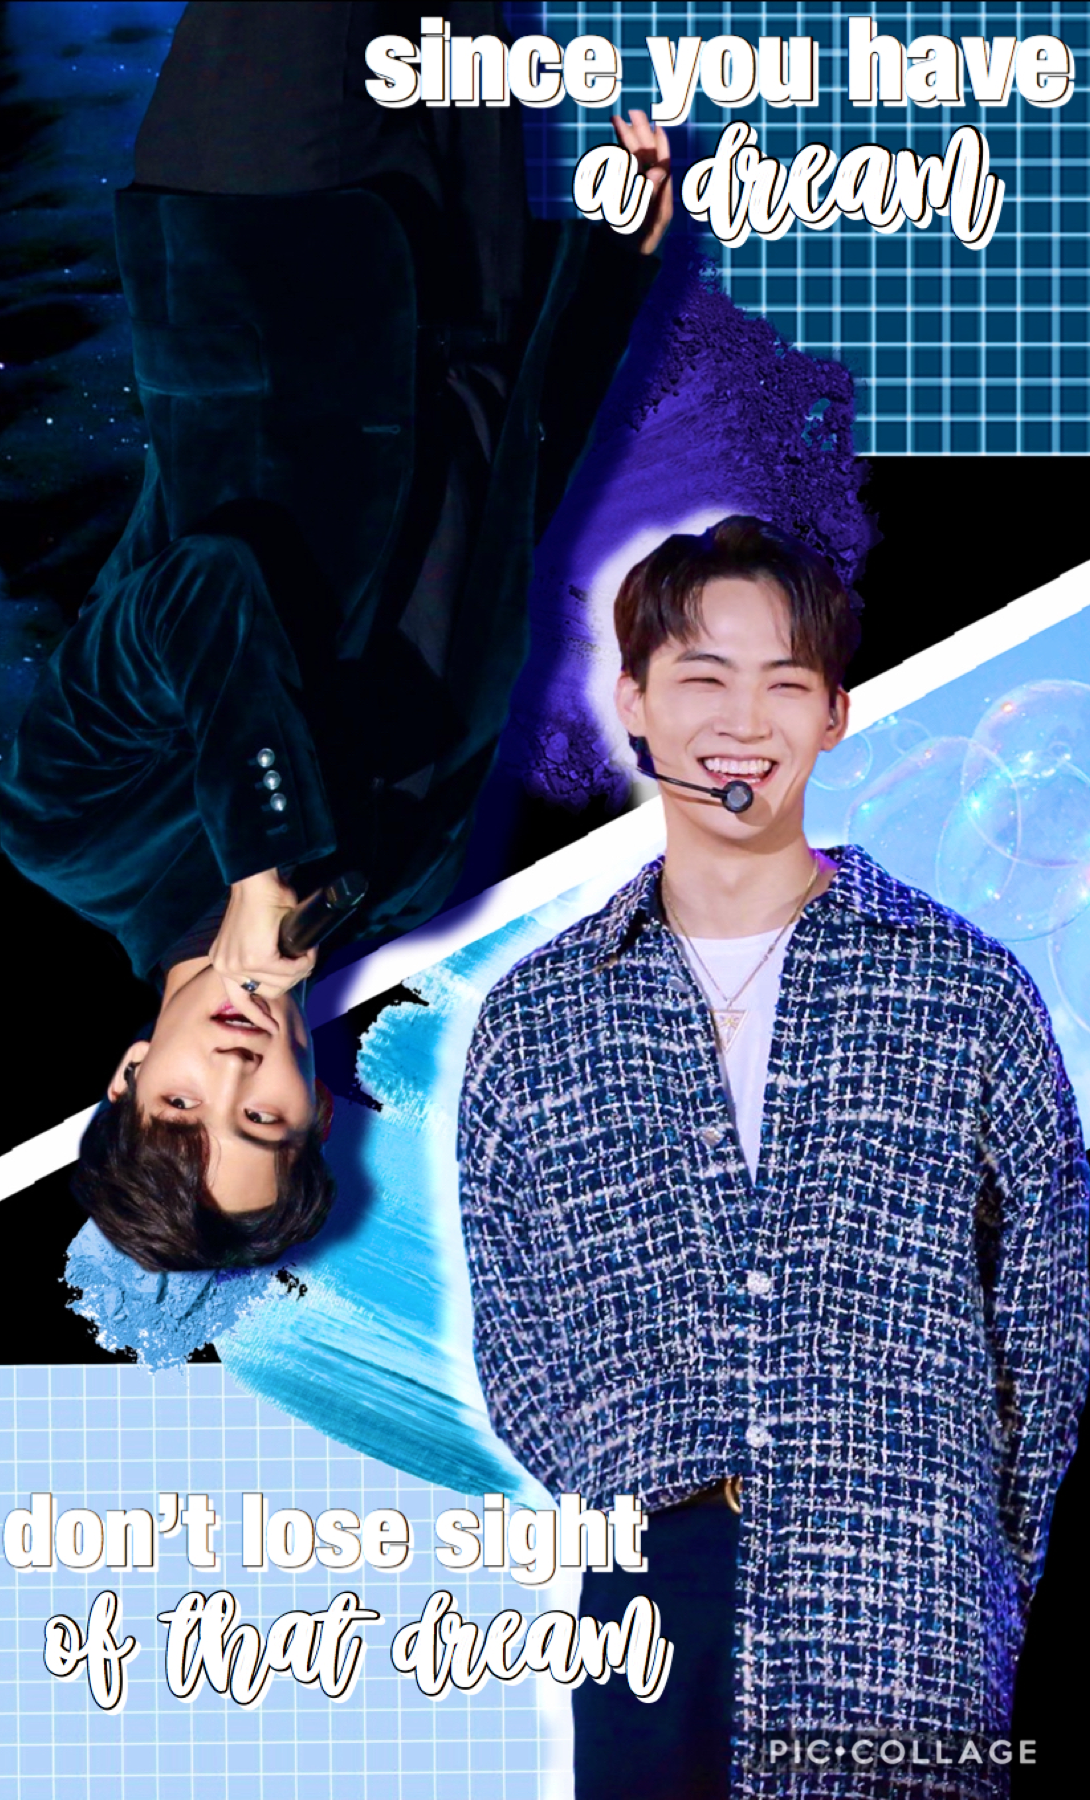 jaebum has just been in my head, man. he gave me some inspo 😌 I hope you're all doing well and are as happy as you can be. in the rare occasion that any of you want to talk to me, i just want to say i'm here for all of you.  💖🌙✨